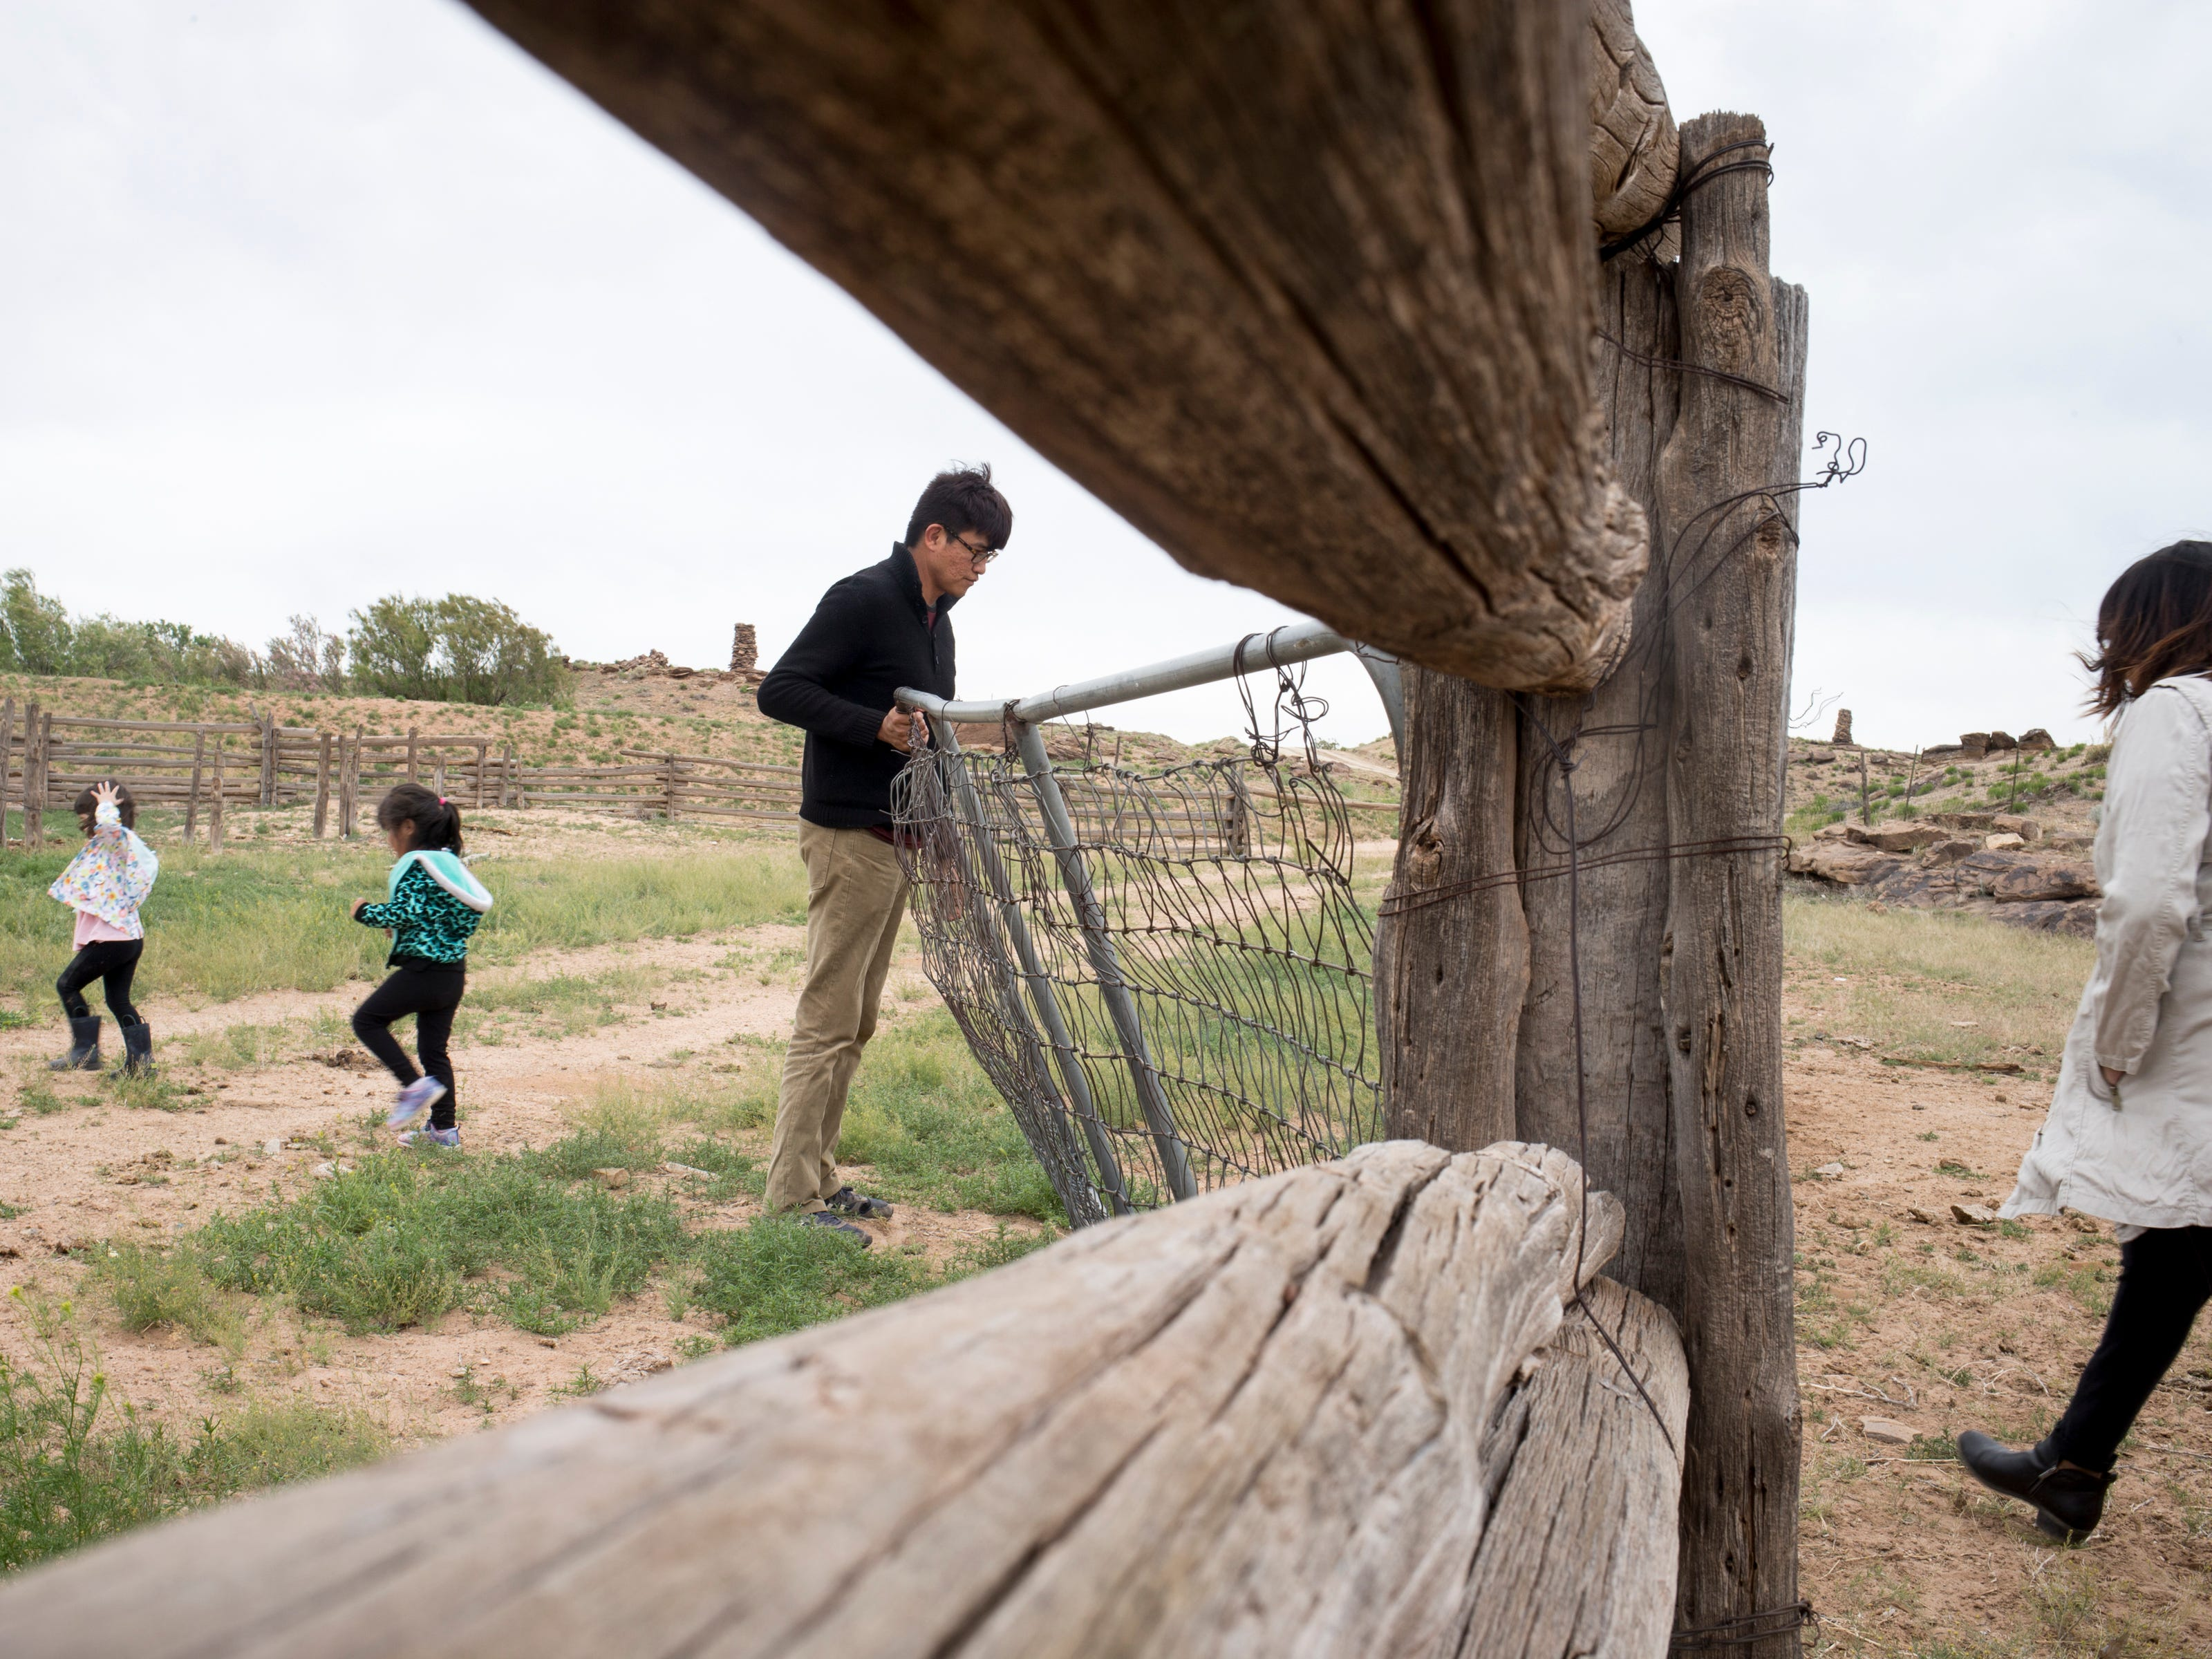 Trent Nez (grandson) opens a gate on the Begaye family farm in the Salt Water Canyon, east of Many Farms, Ariz., on May 16, 2019.